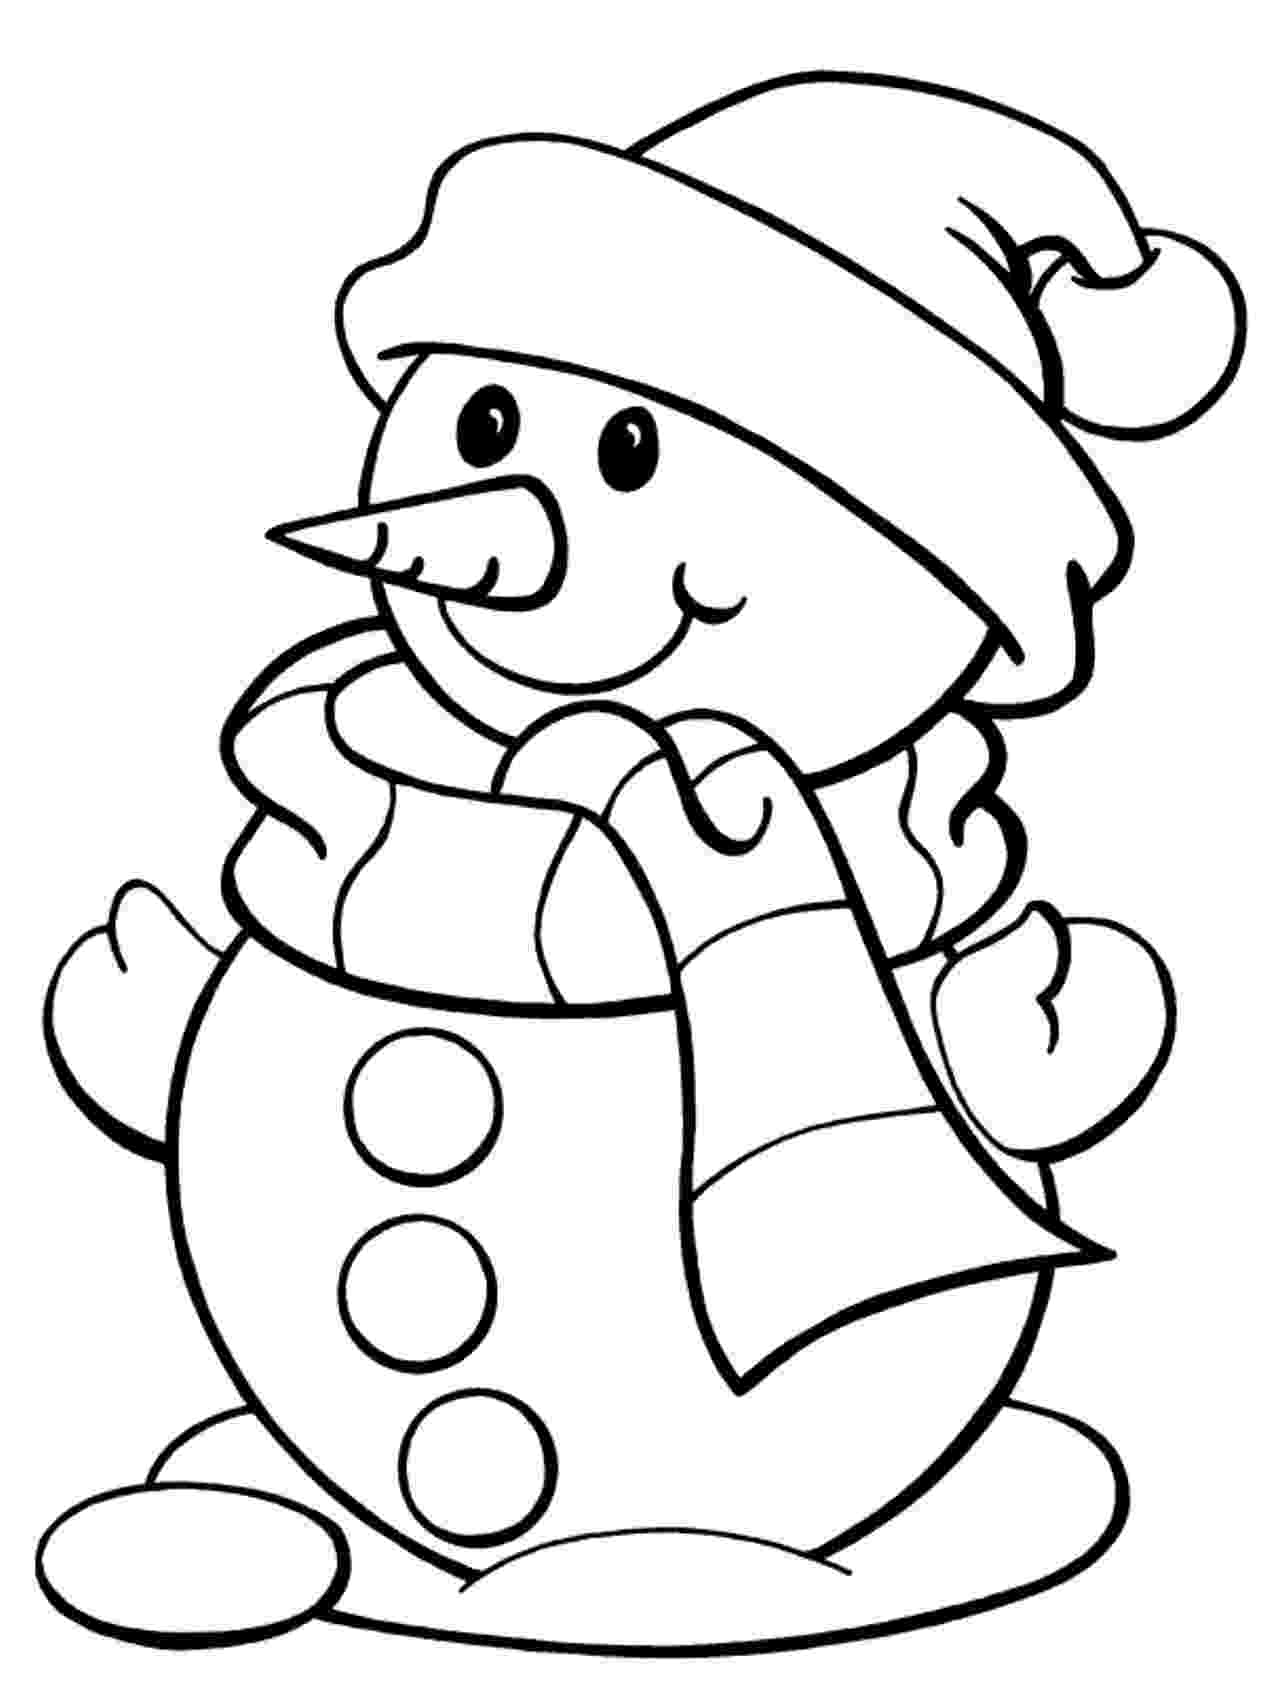 colouring sheets winter winter puzzle coloring pages printable winter themed sheets colouring winter